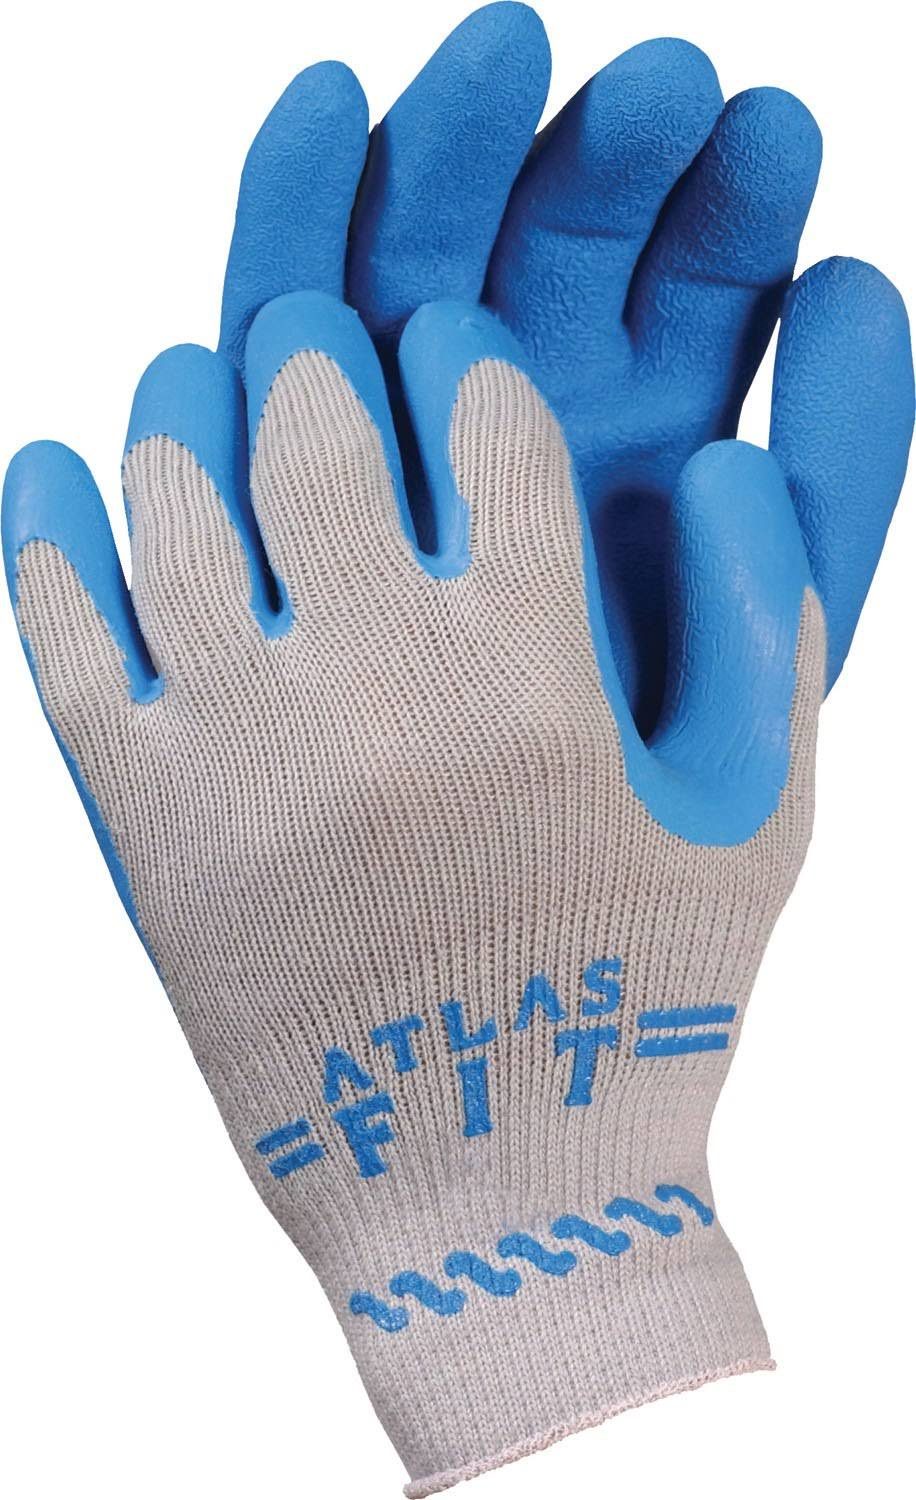 Bellingham Latex Palm Dip Gloves - Blue, Small